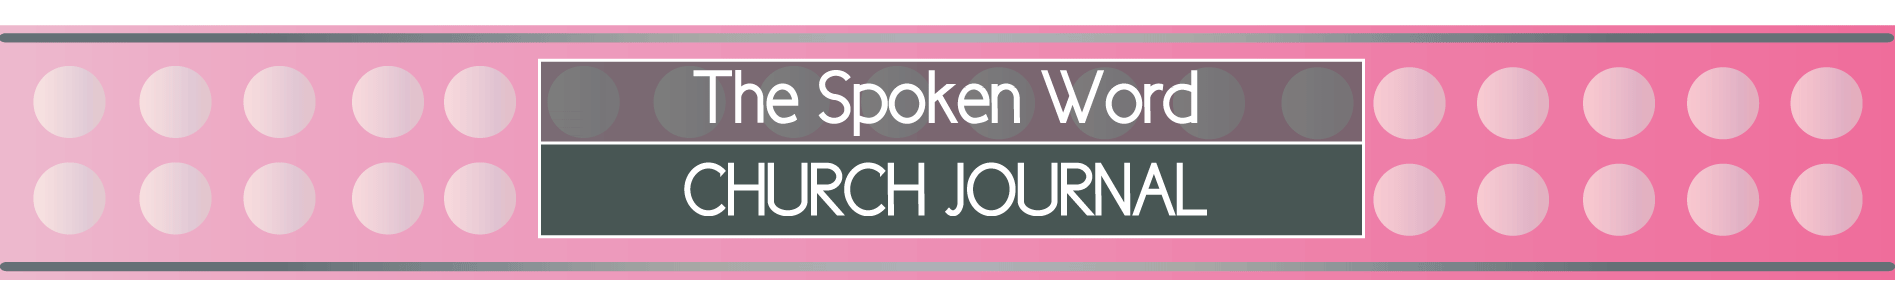 The Spoken Word Church Journal